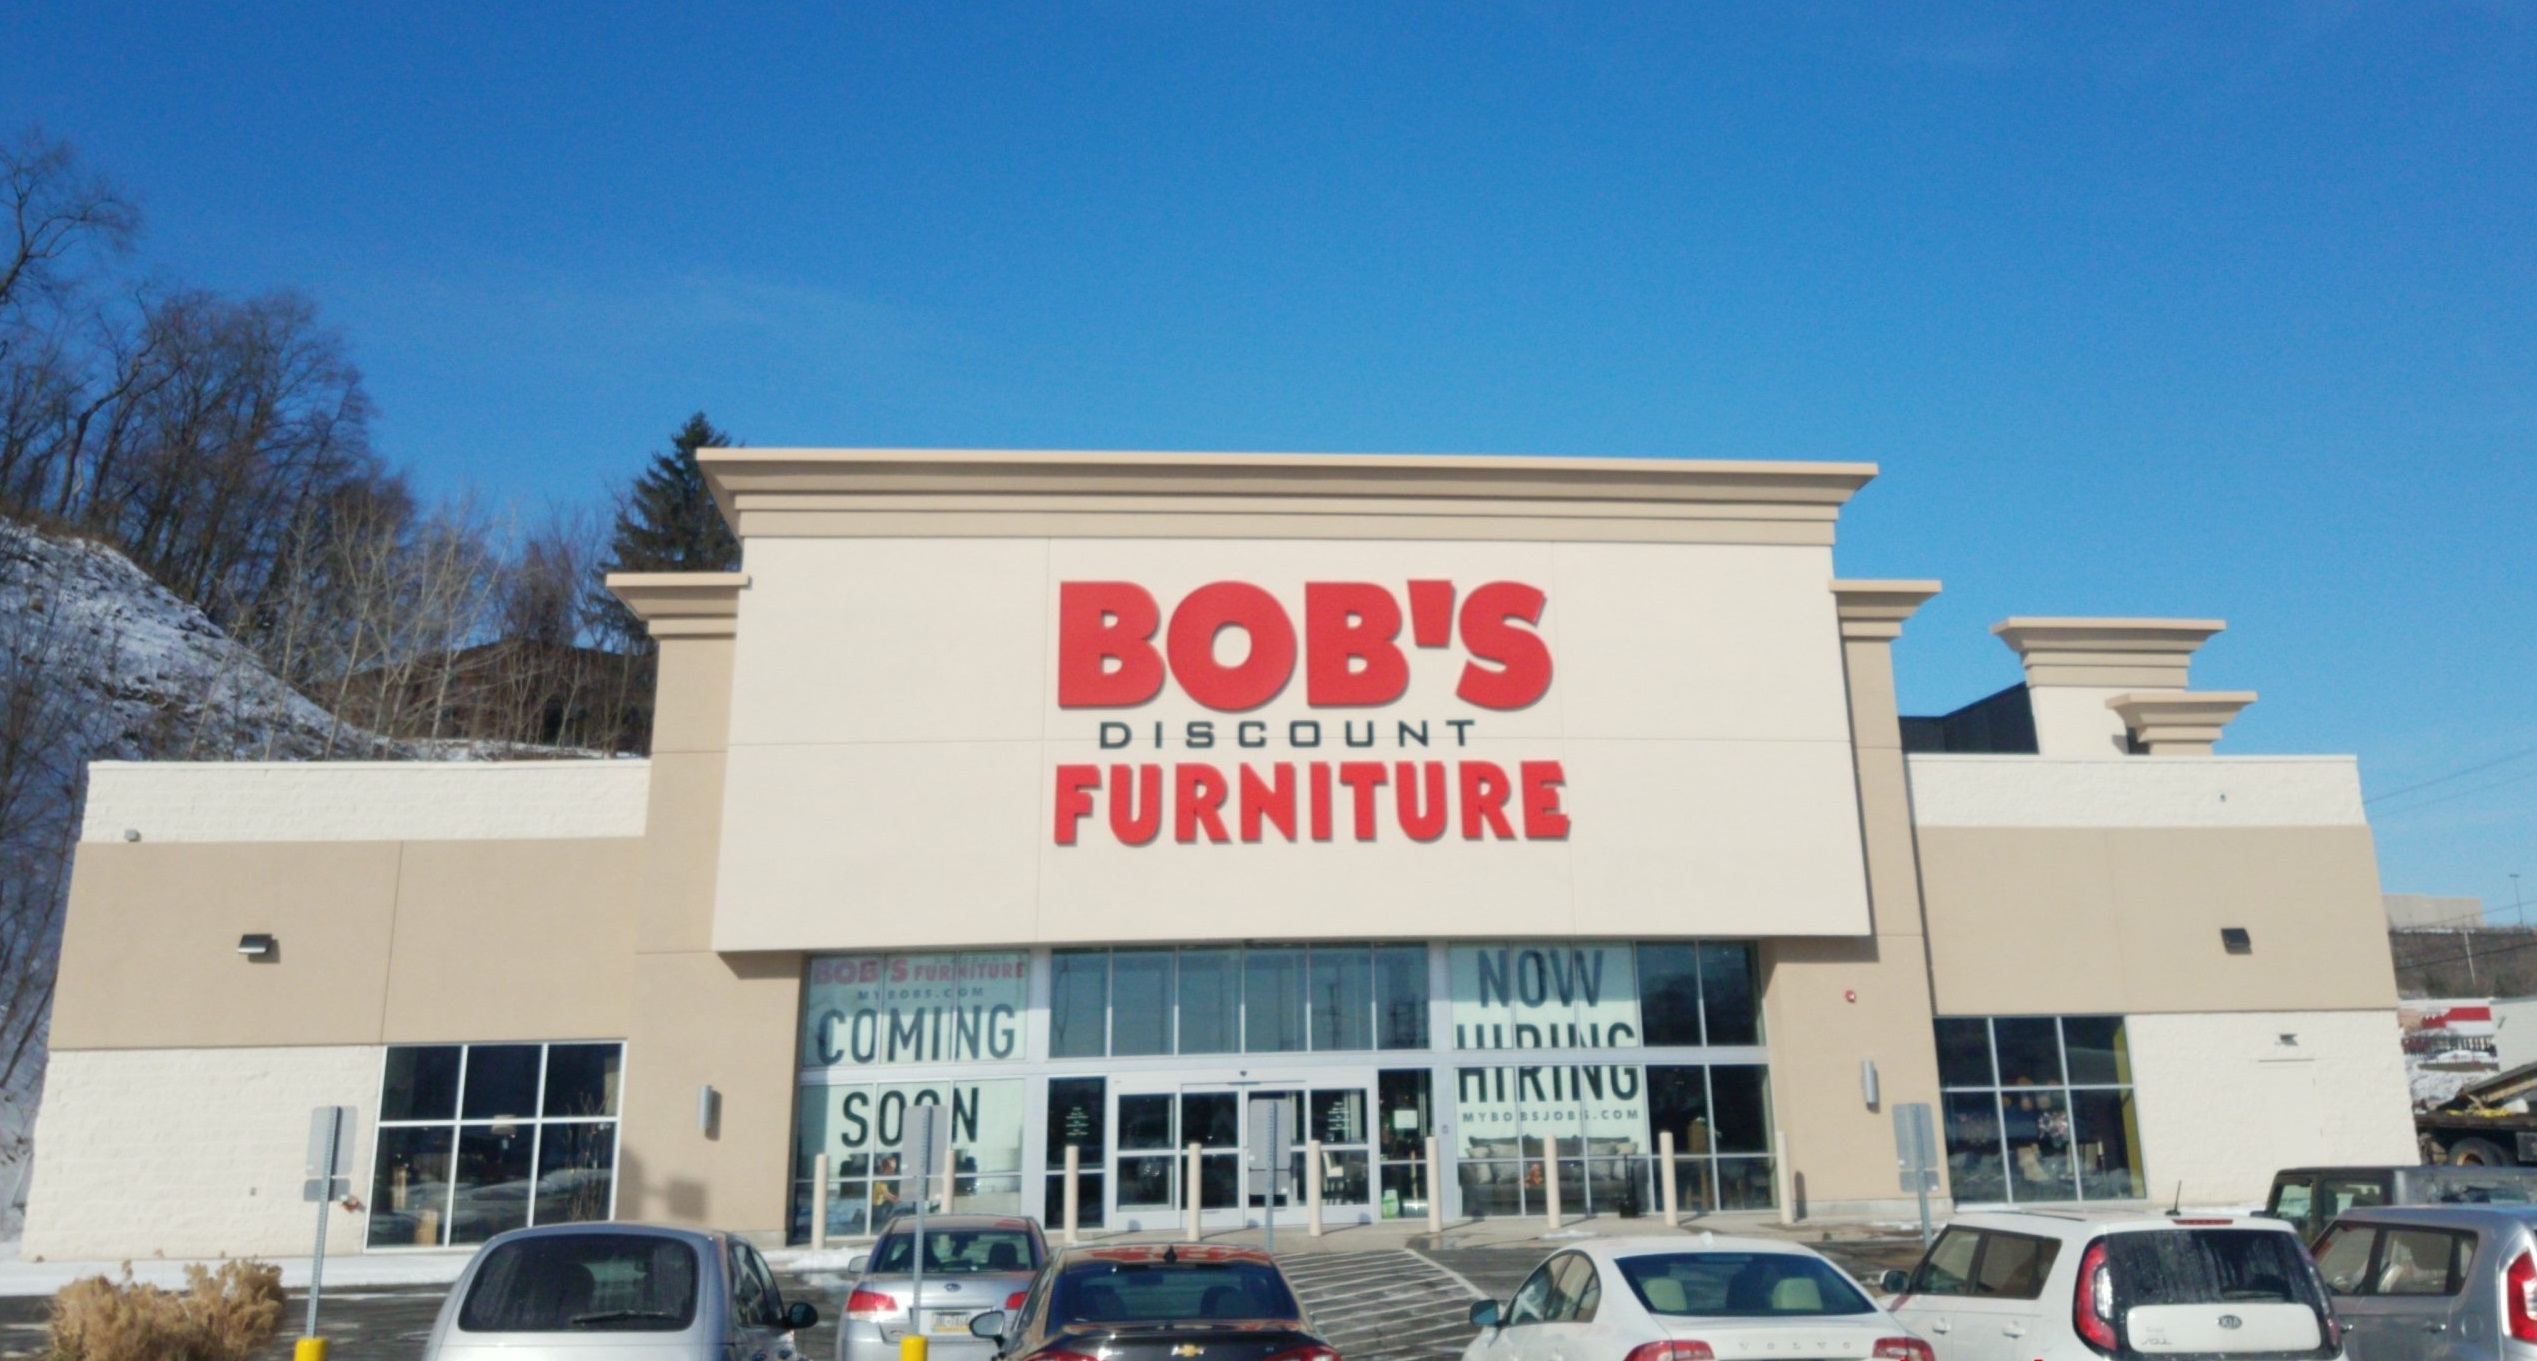 Bob S Discount Furniture Fiorilli Construction